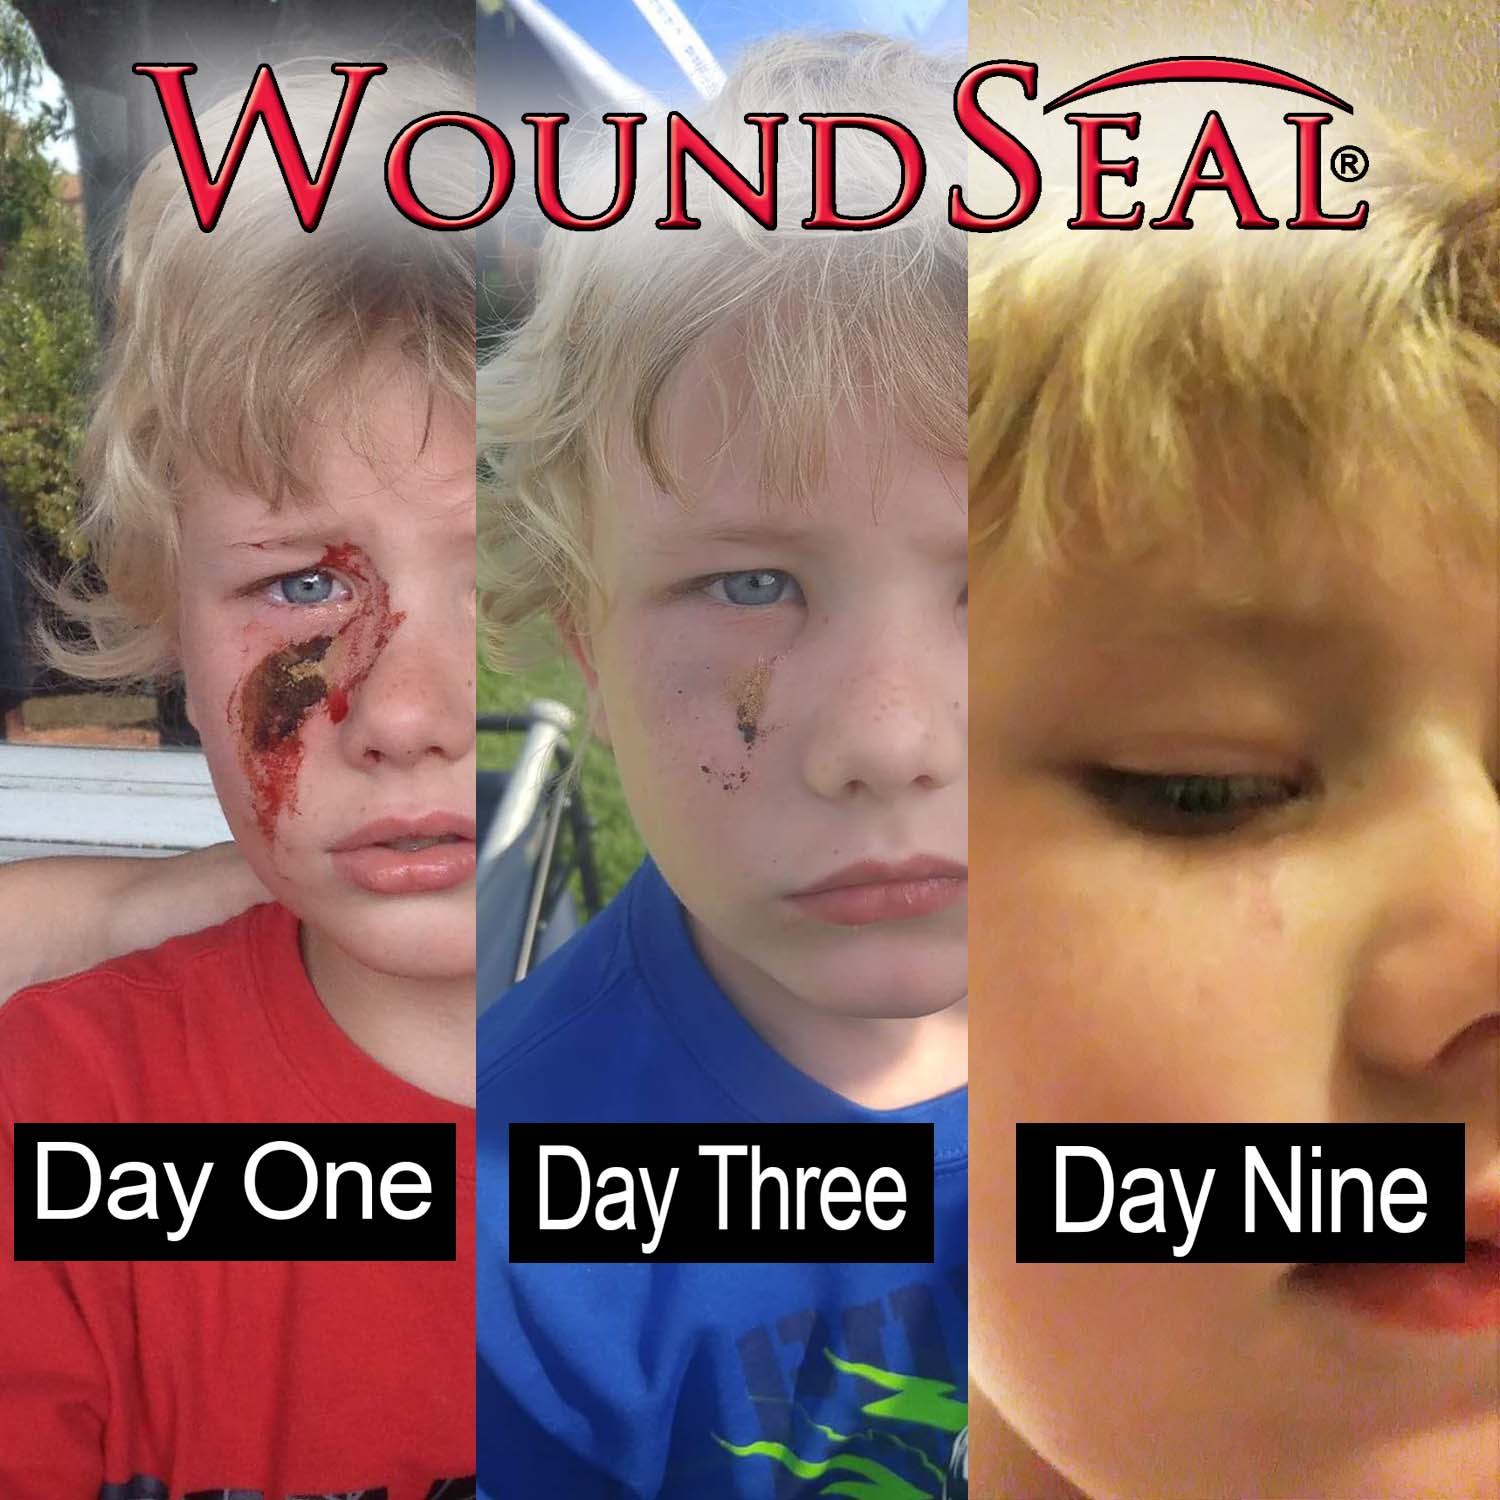 WoundSeal Stop Bleeding Instantly